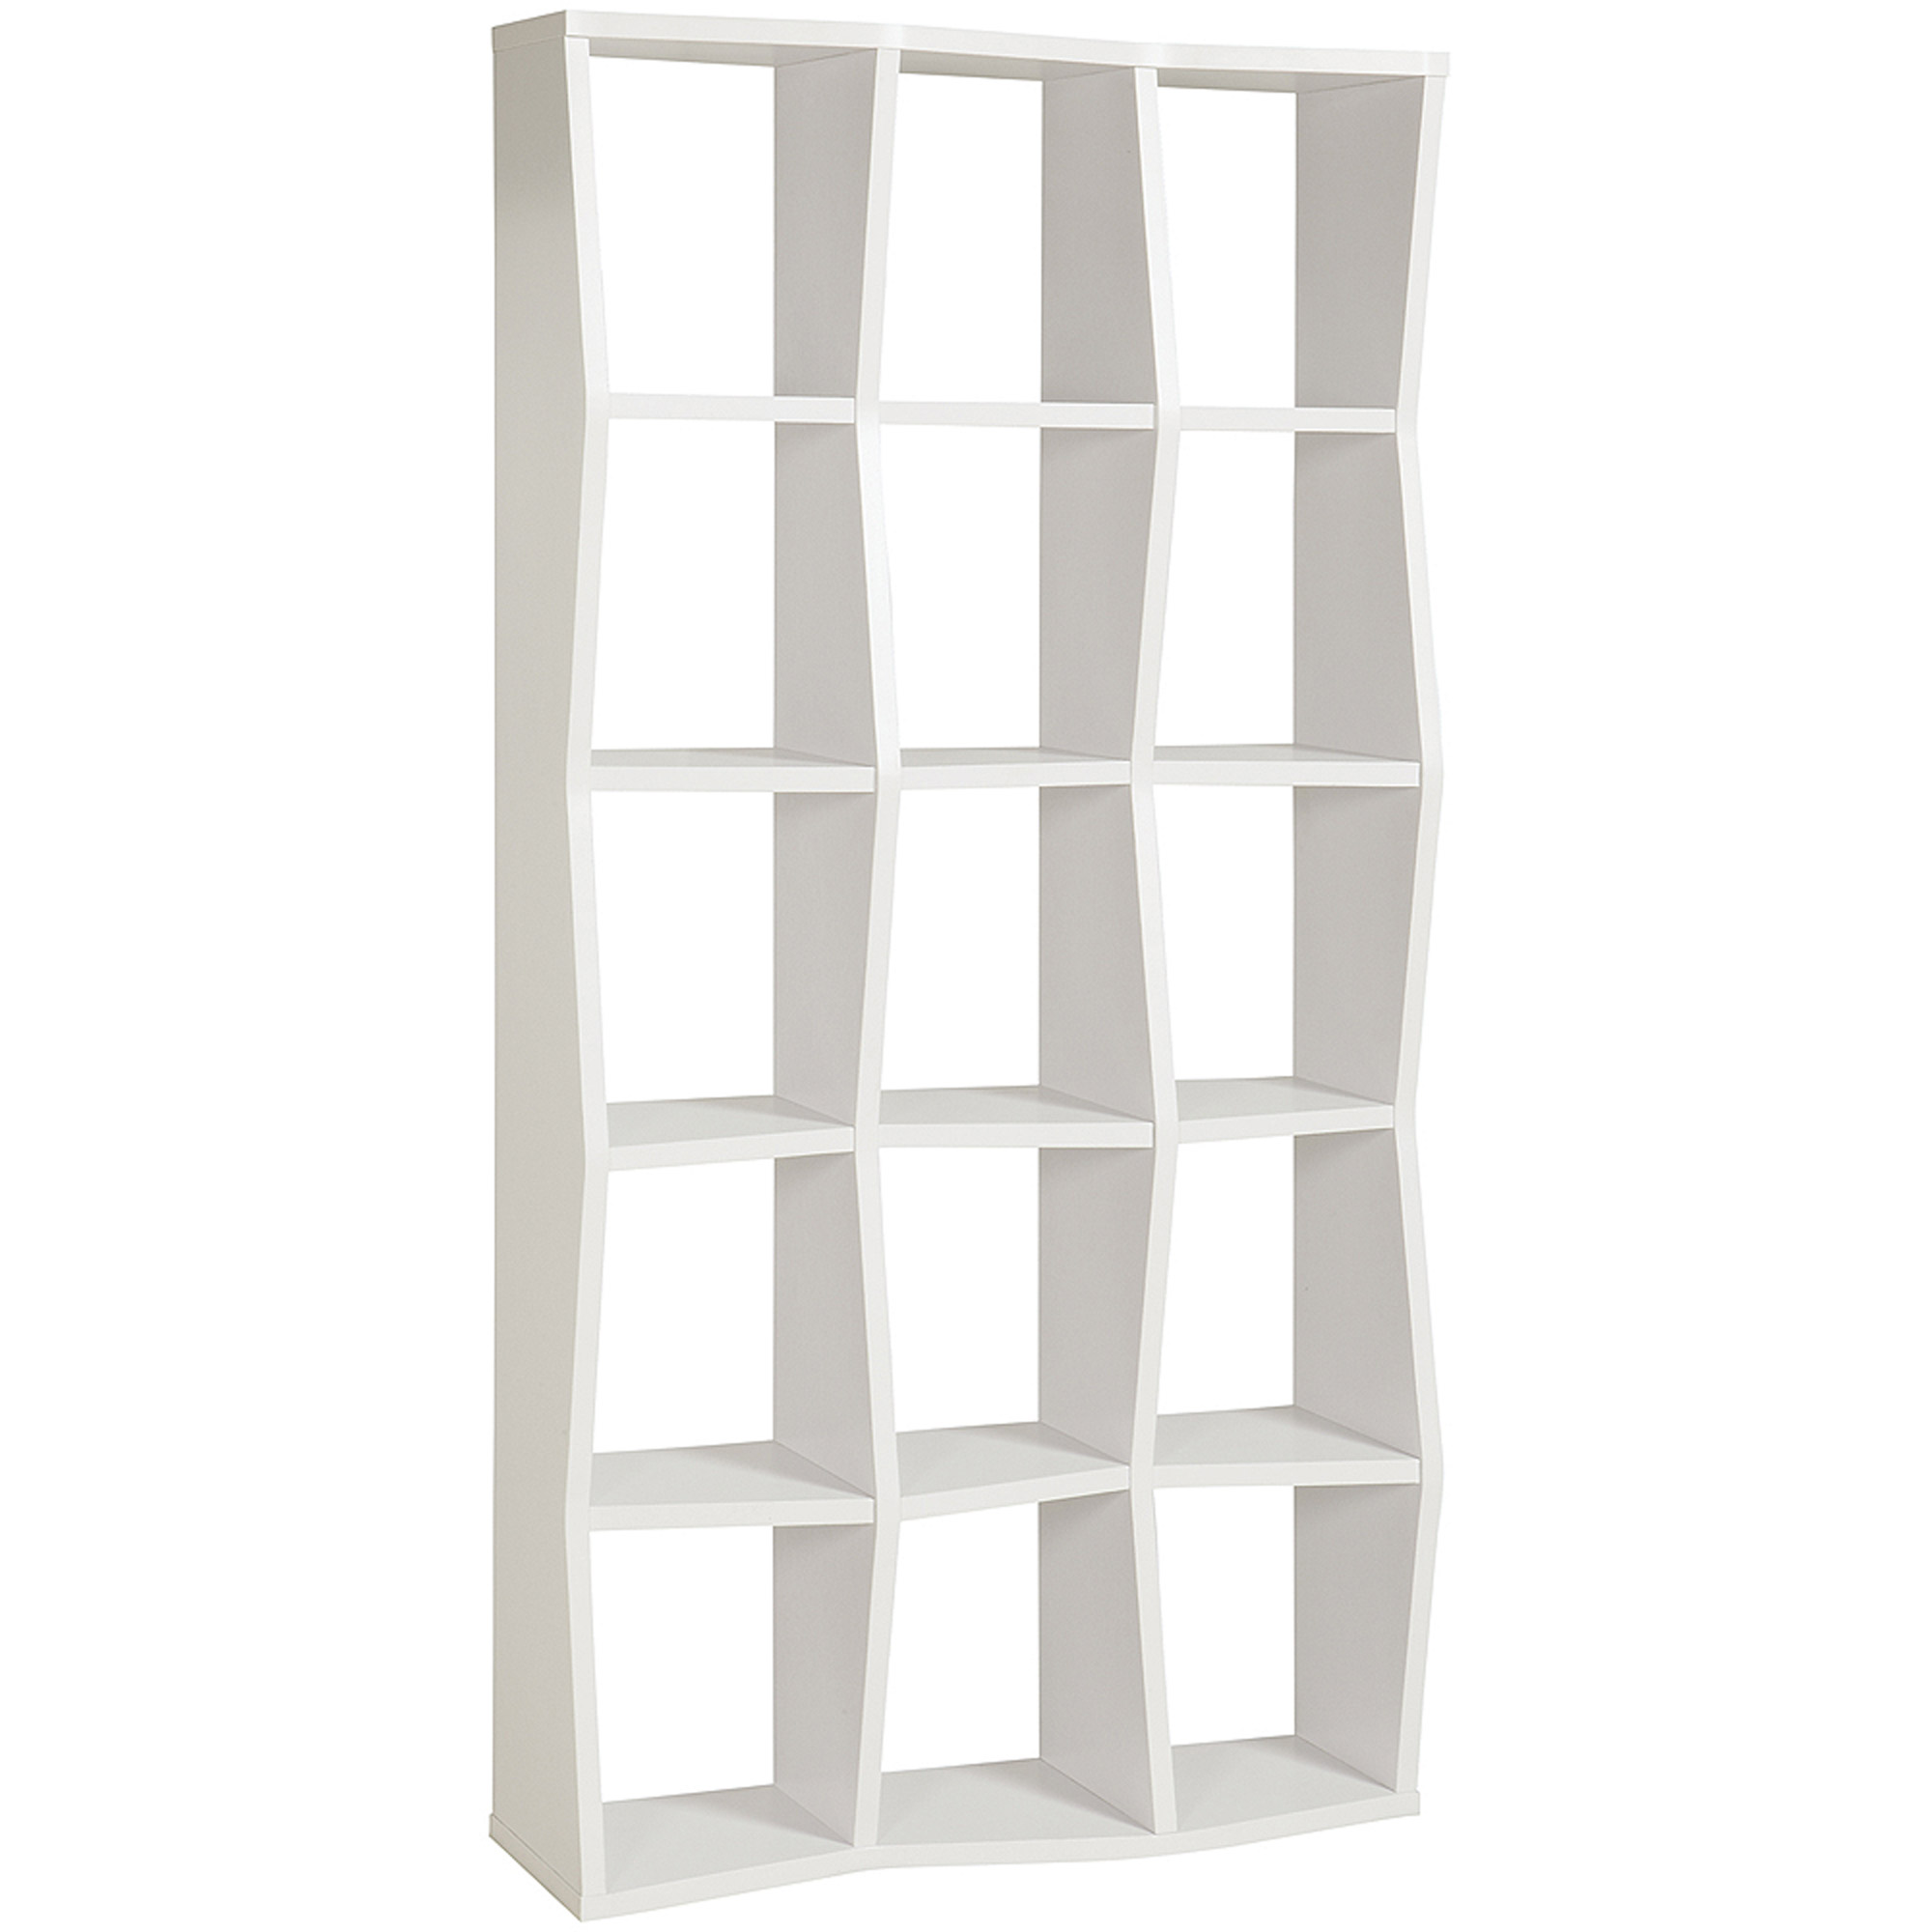 Coaster Backless Bookcase, White by Coaster Company